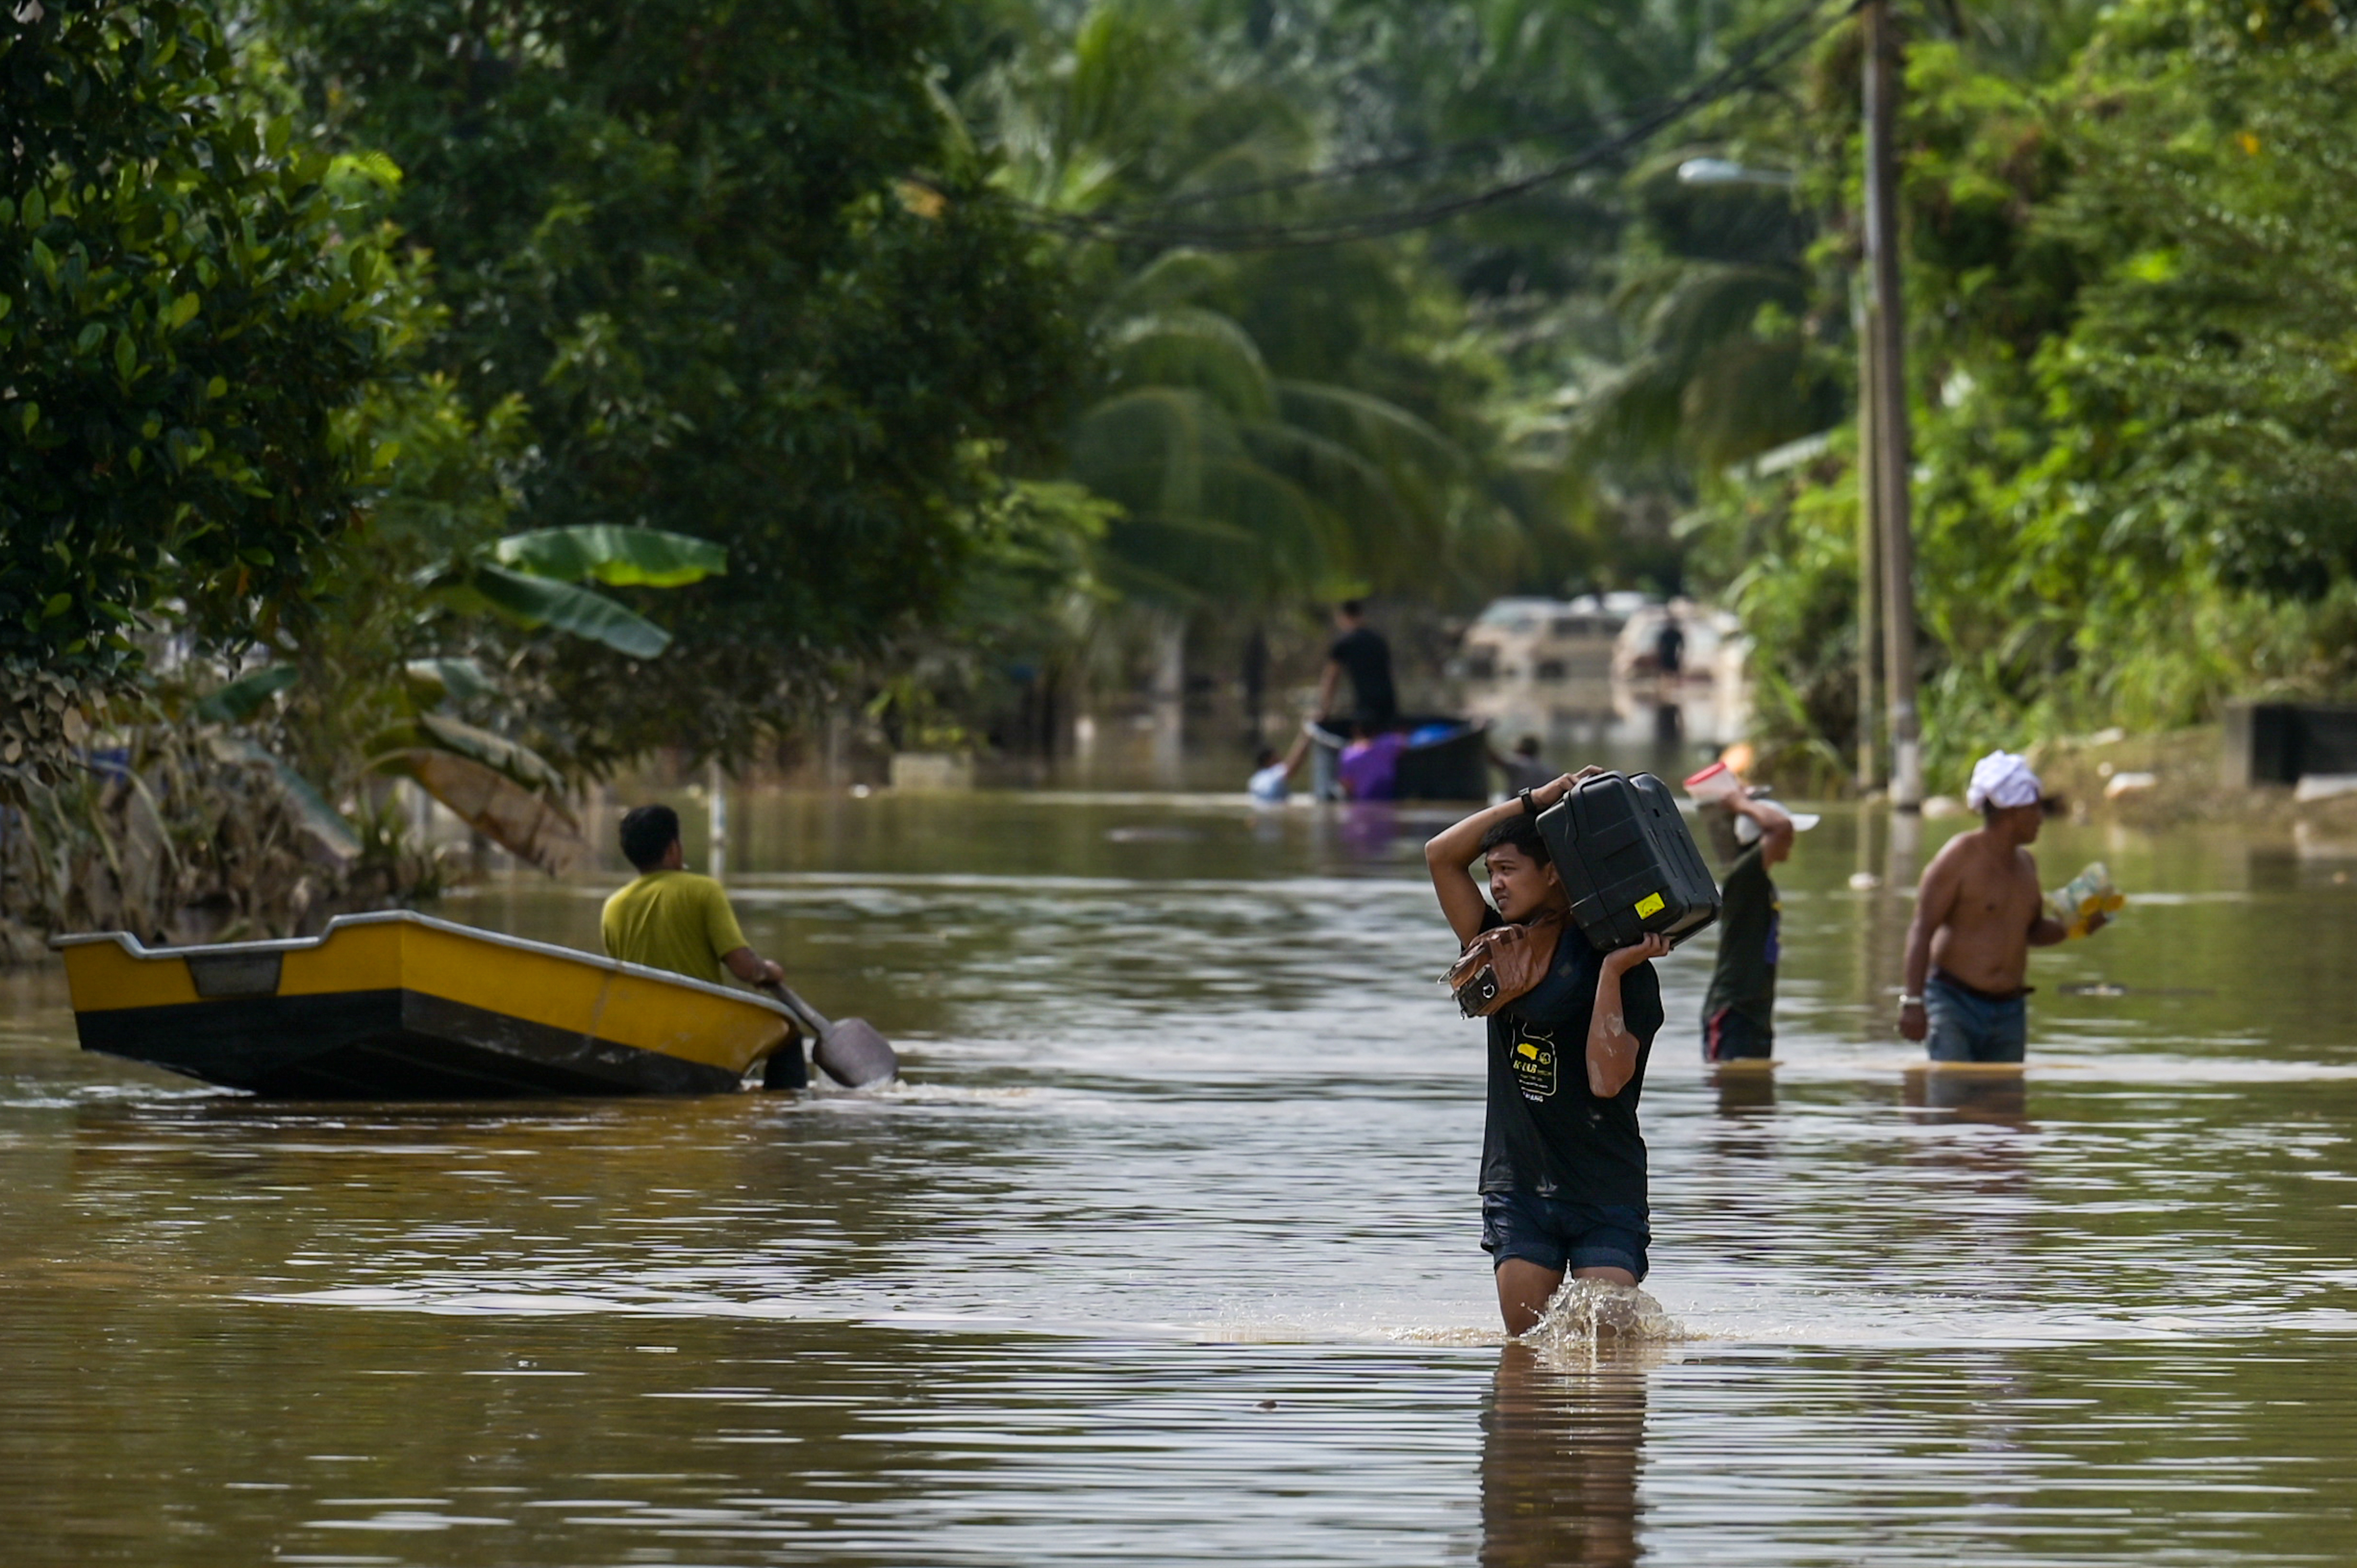 Six dead, nearly 50,000 evacuated in Malaysia floods | Thai PBS World : The latest Thai news in English, News Headlines, World News and News Broadcasts in both Thai and English. We